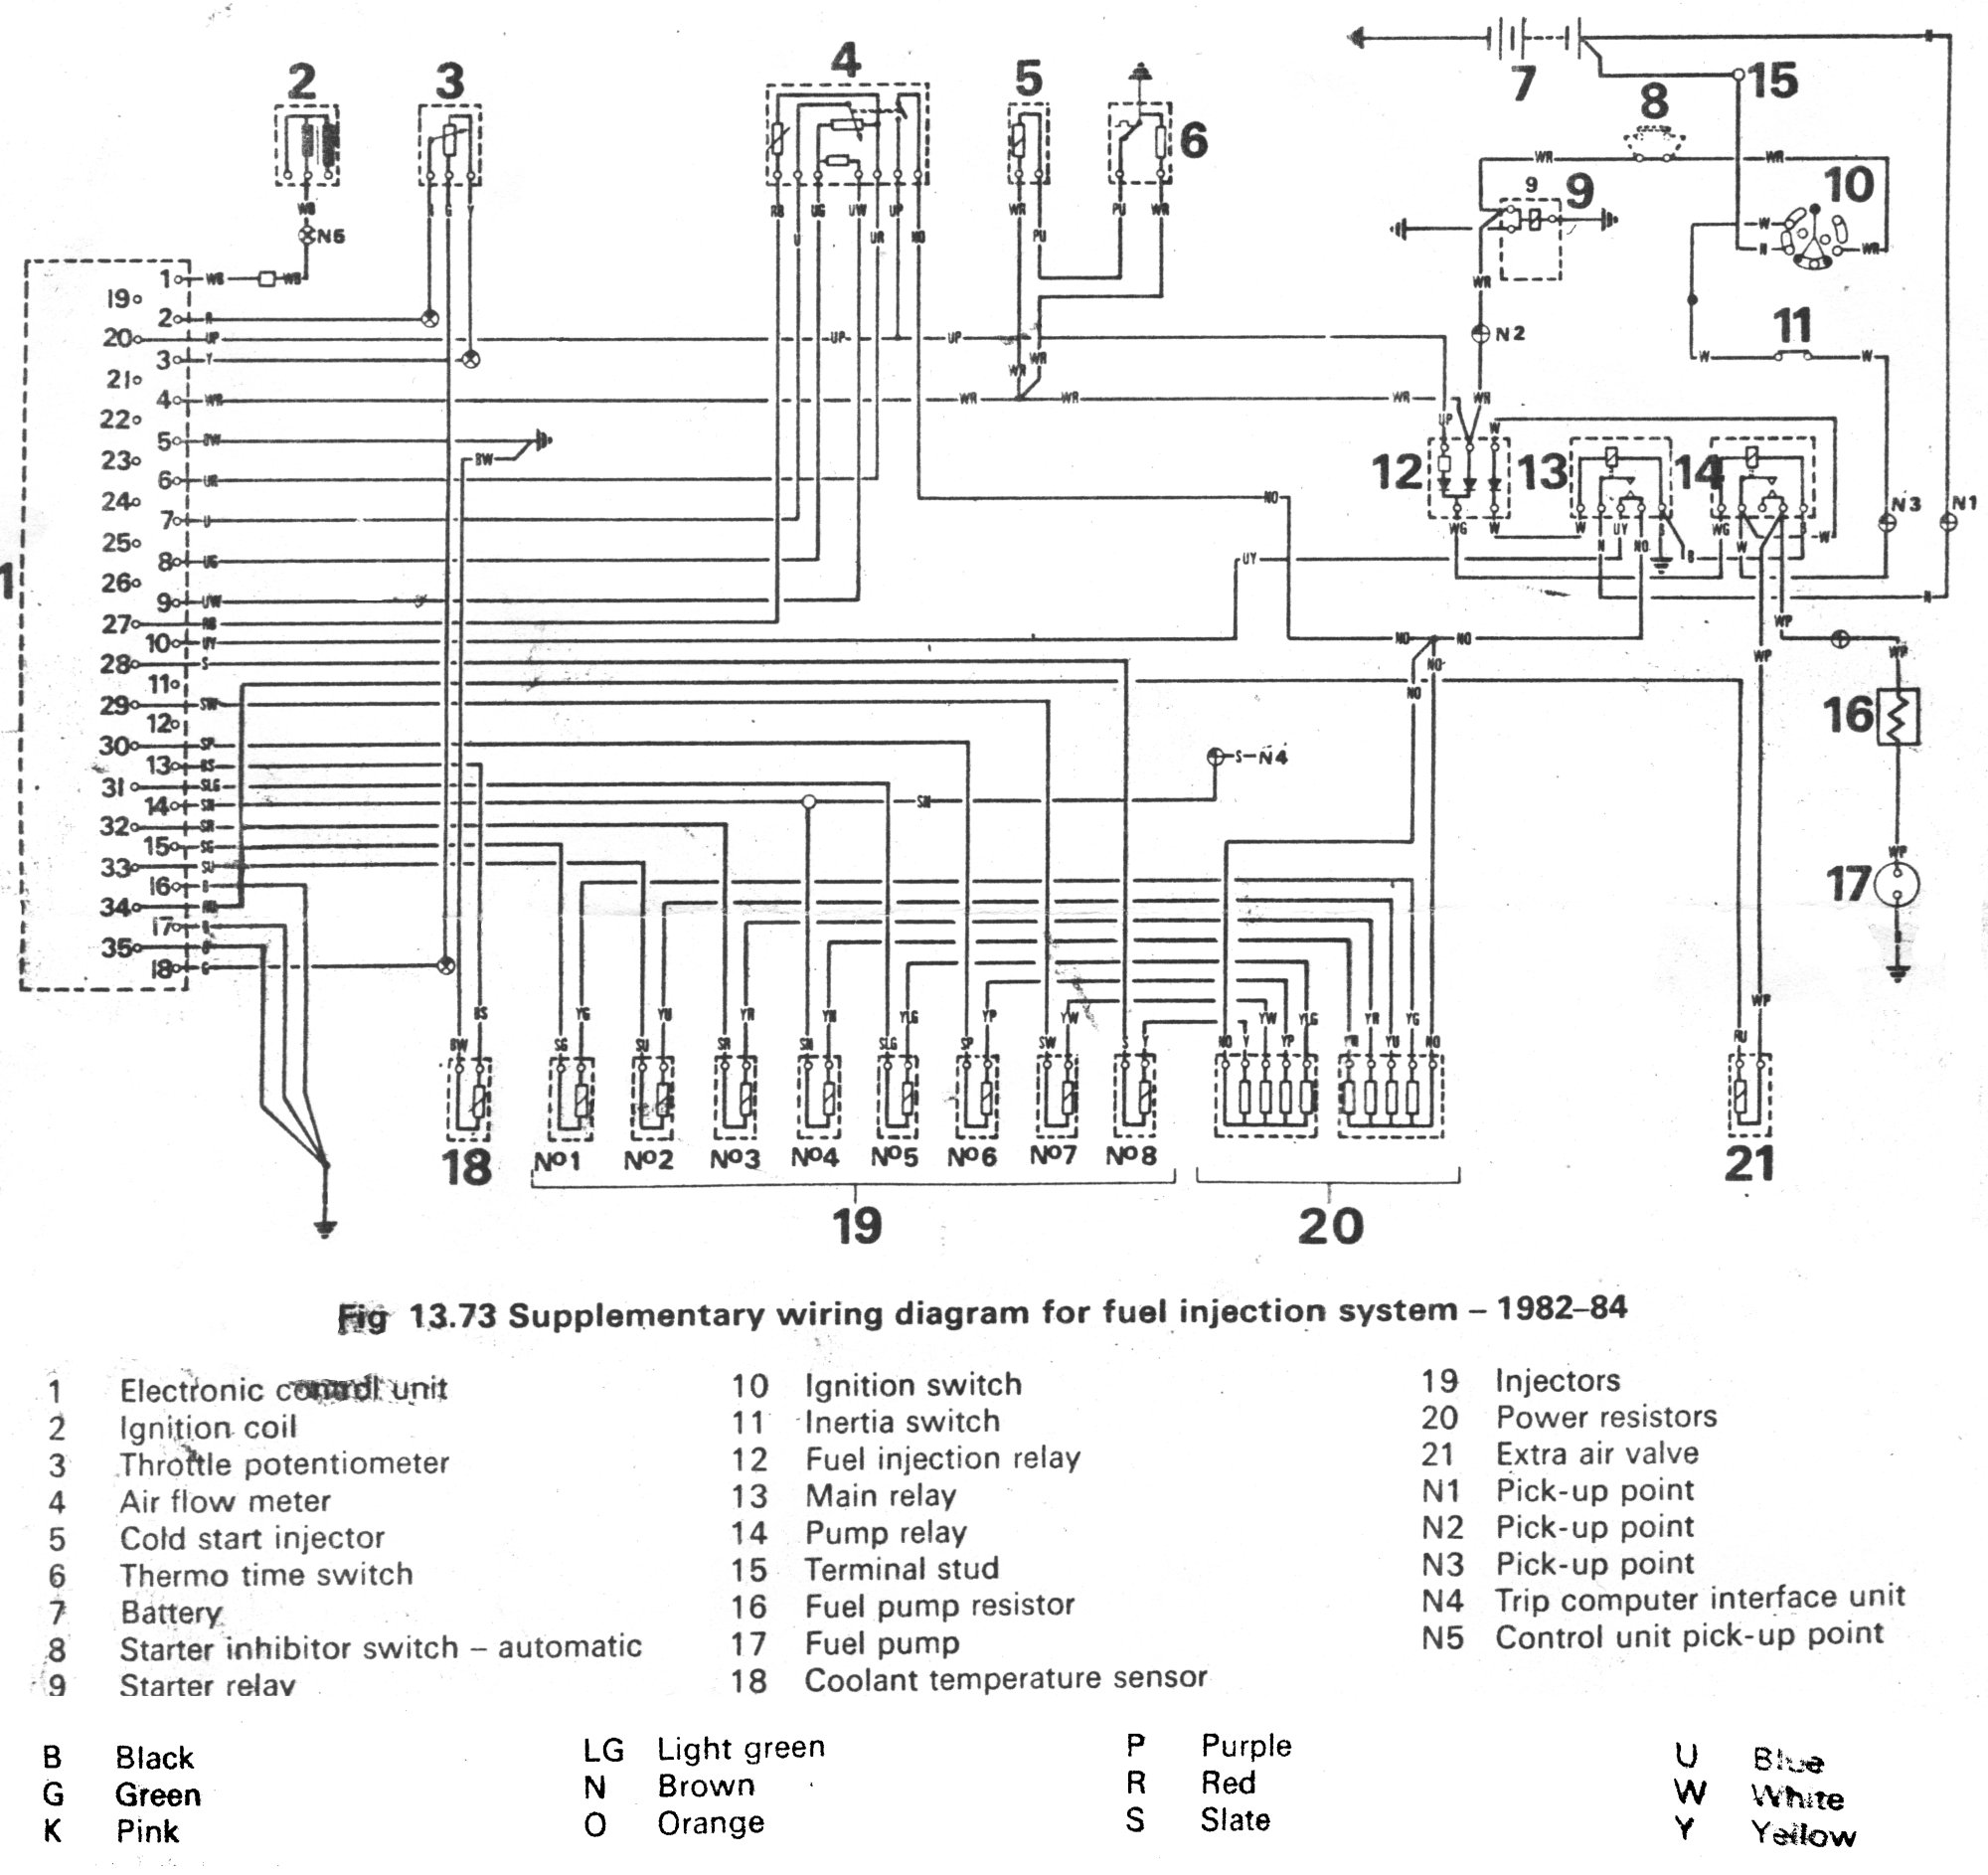 Range Rover P38 Fuse Box Wiring - Wiring Diagrams Show on